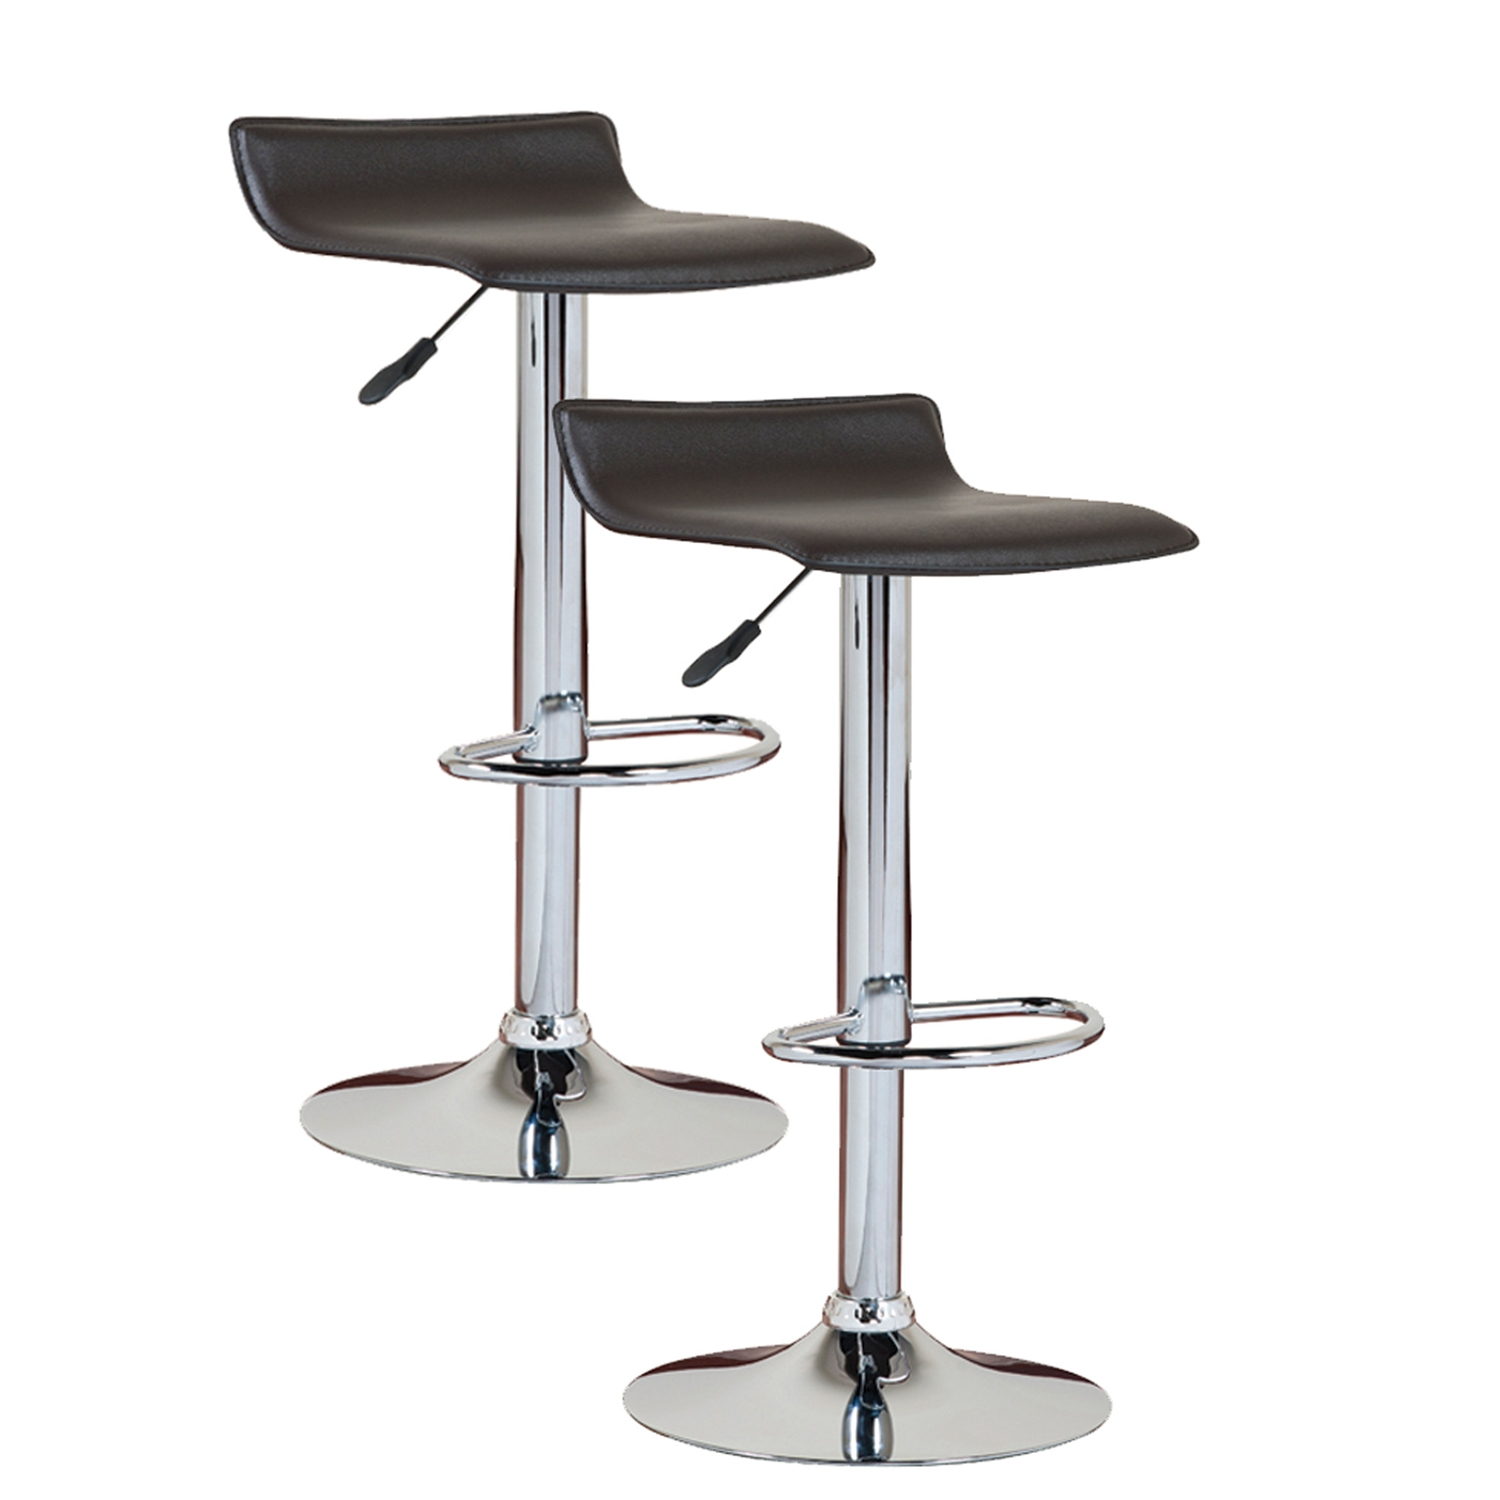 This Set Of 2 Modern Swivel Bar Stools In Black And Chrome Is A Blend Of